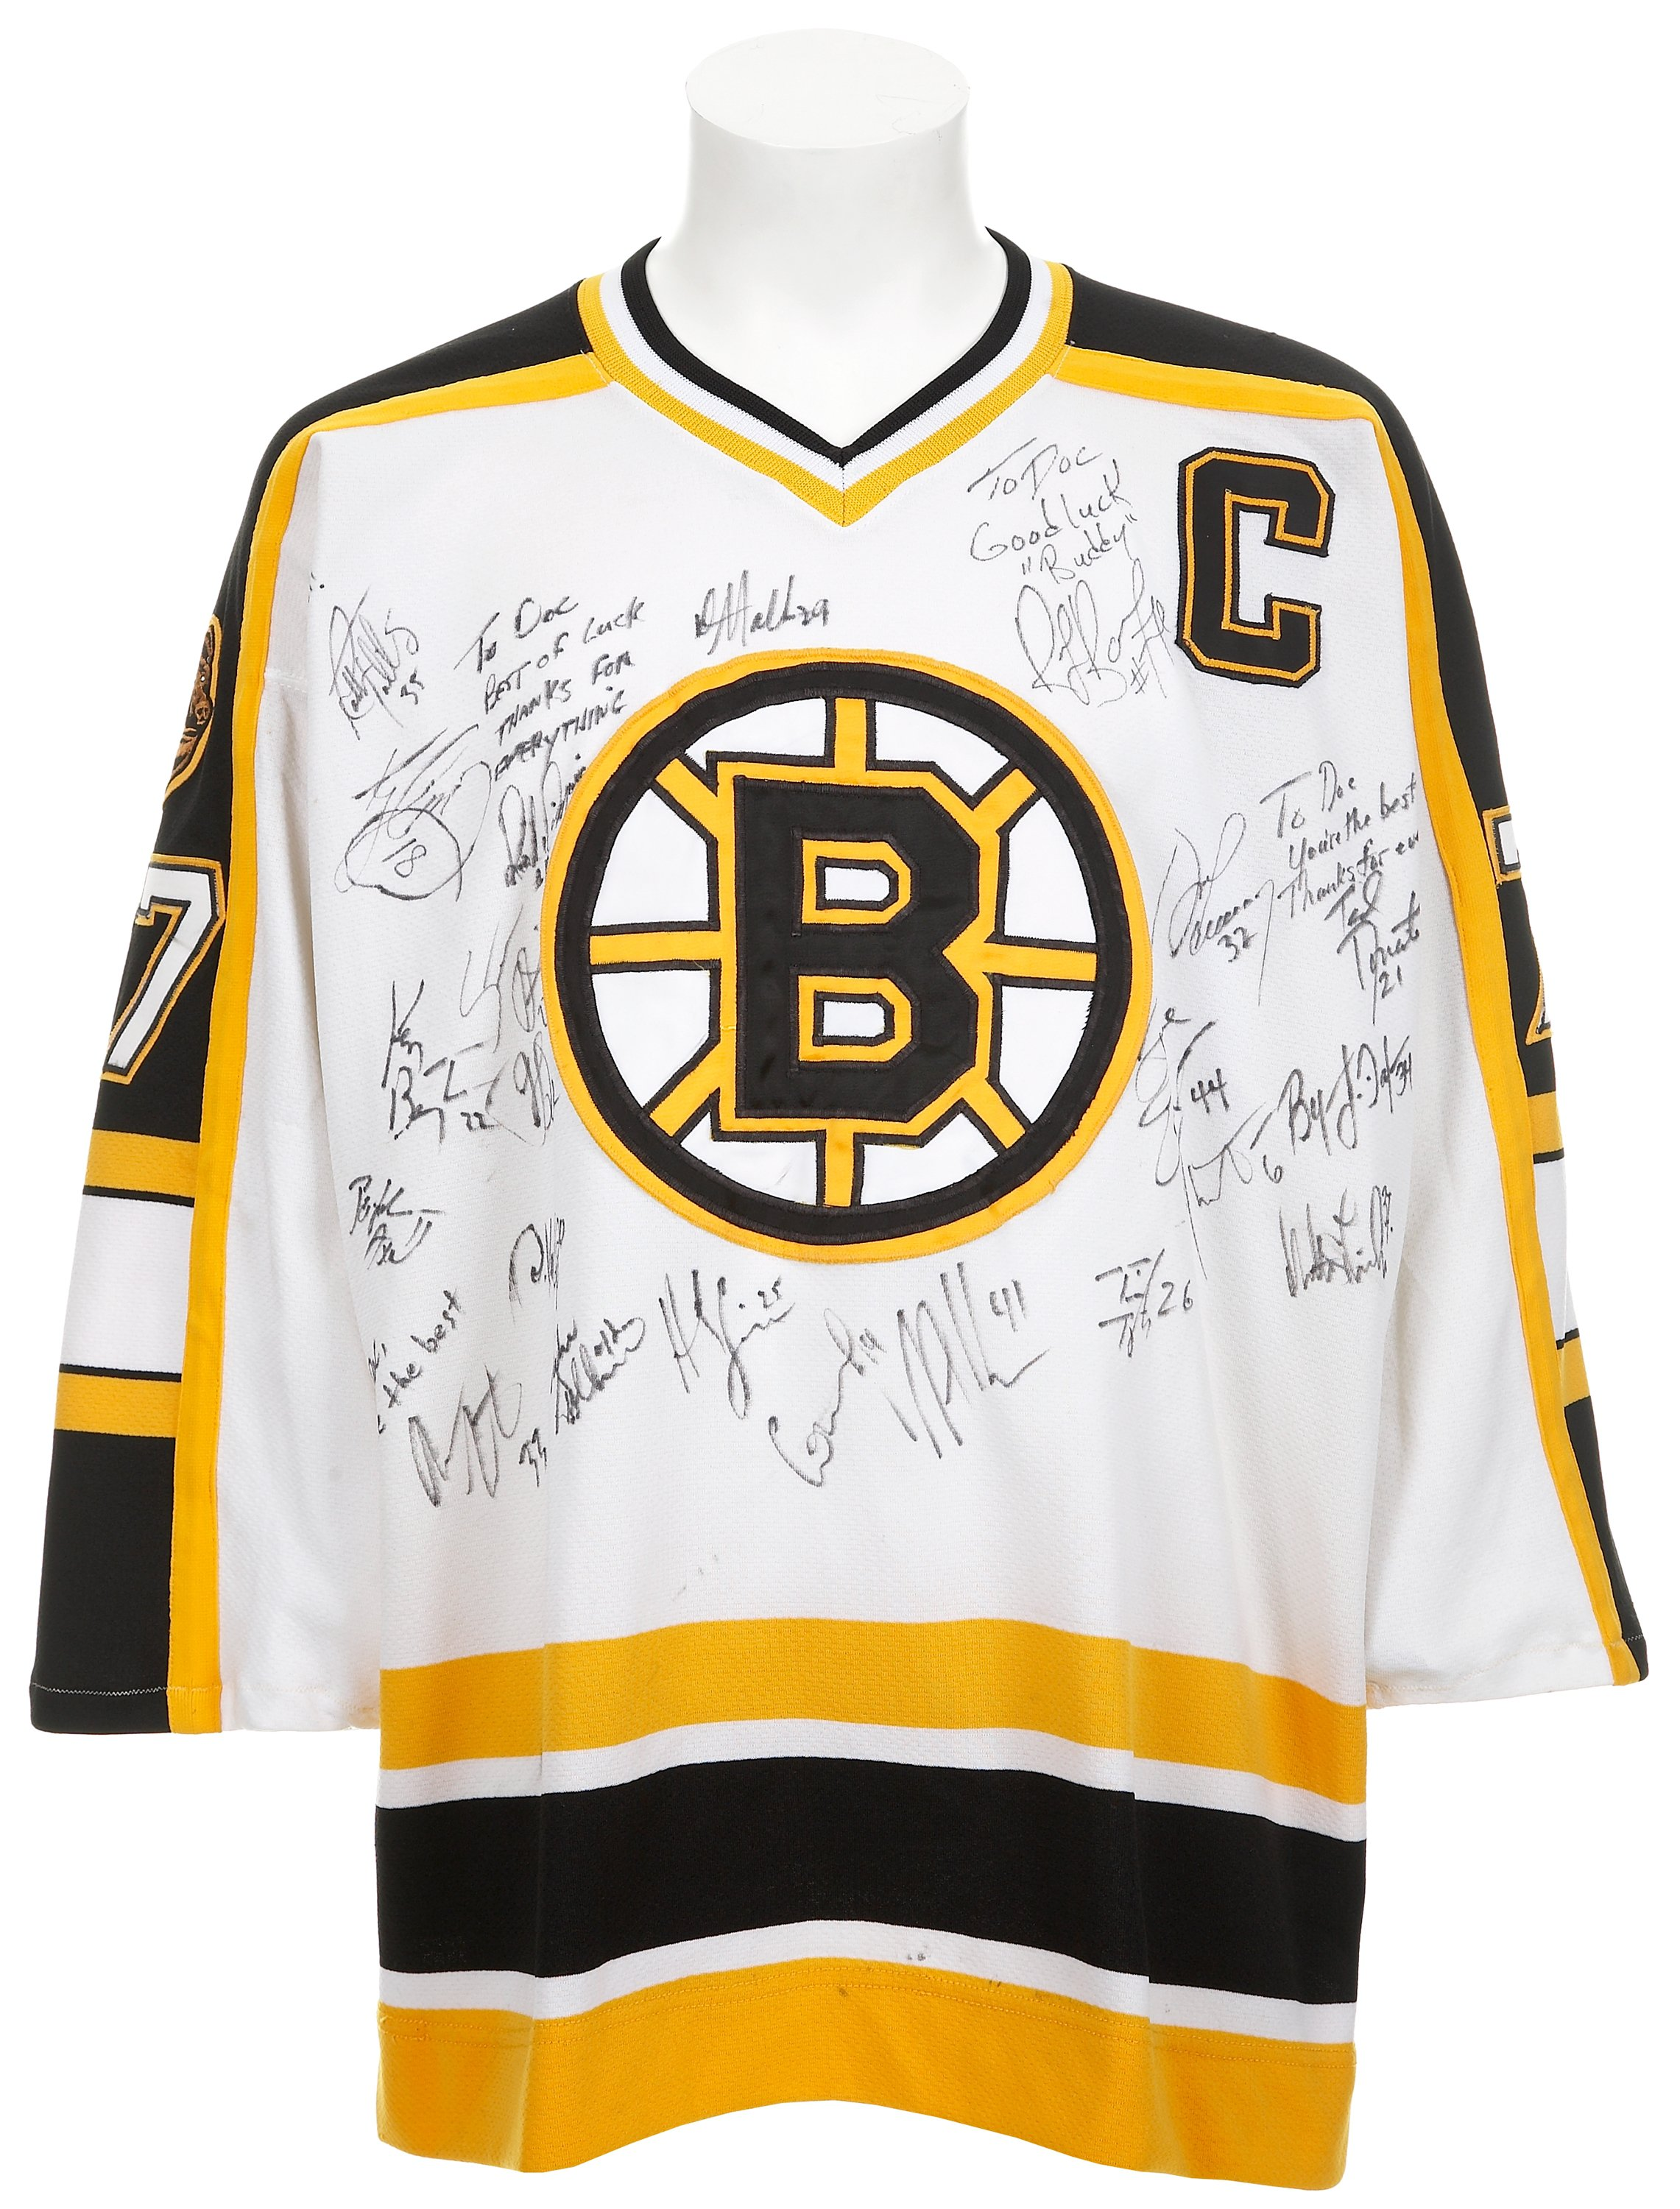 hot sale online 6c8cc 4ac15 1997-98 Ray Bourque Game Worn Jersey Signed by Boston Bruins ...